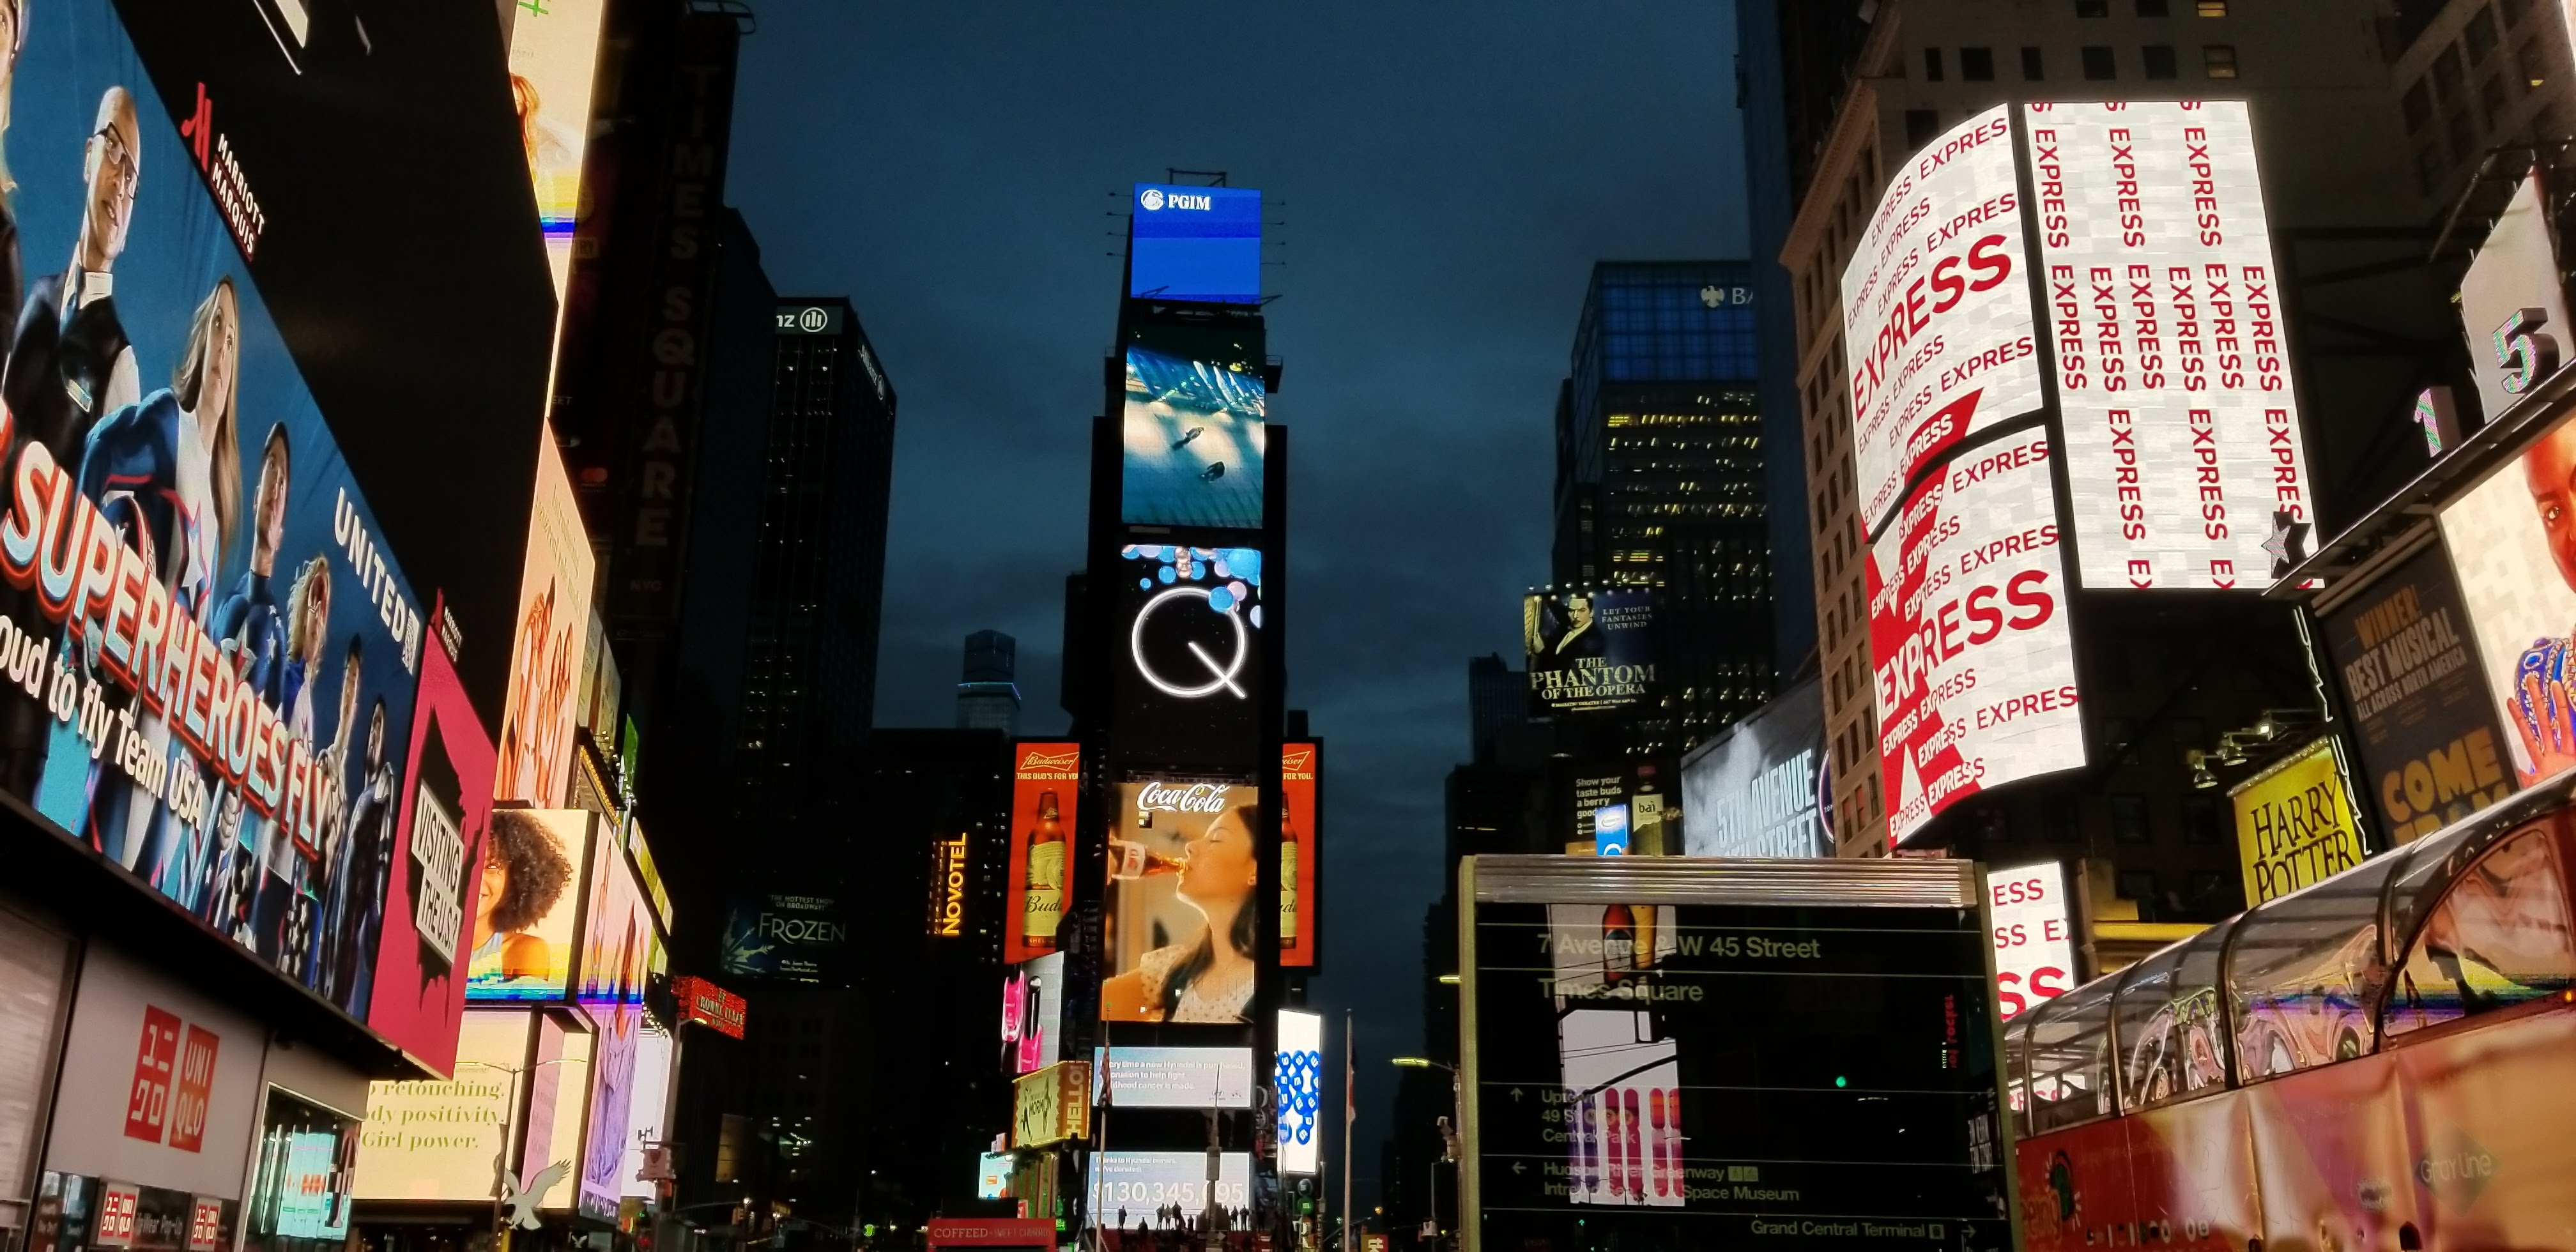 prismview a samsung company times square led display